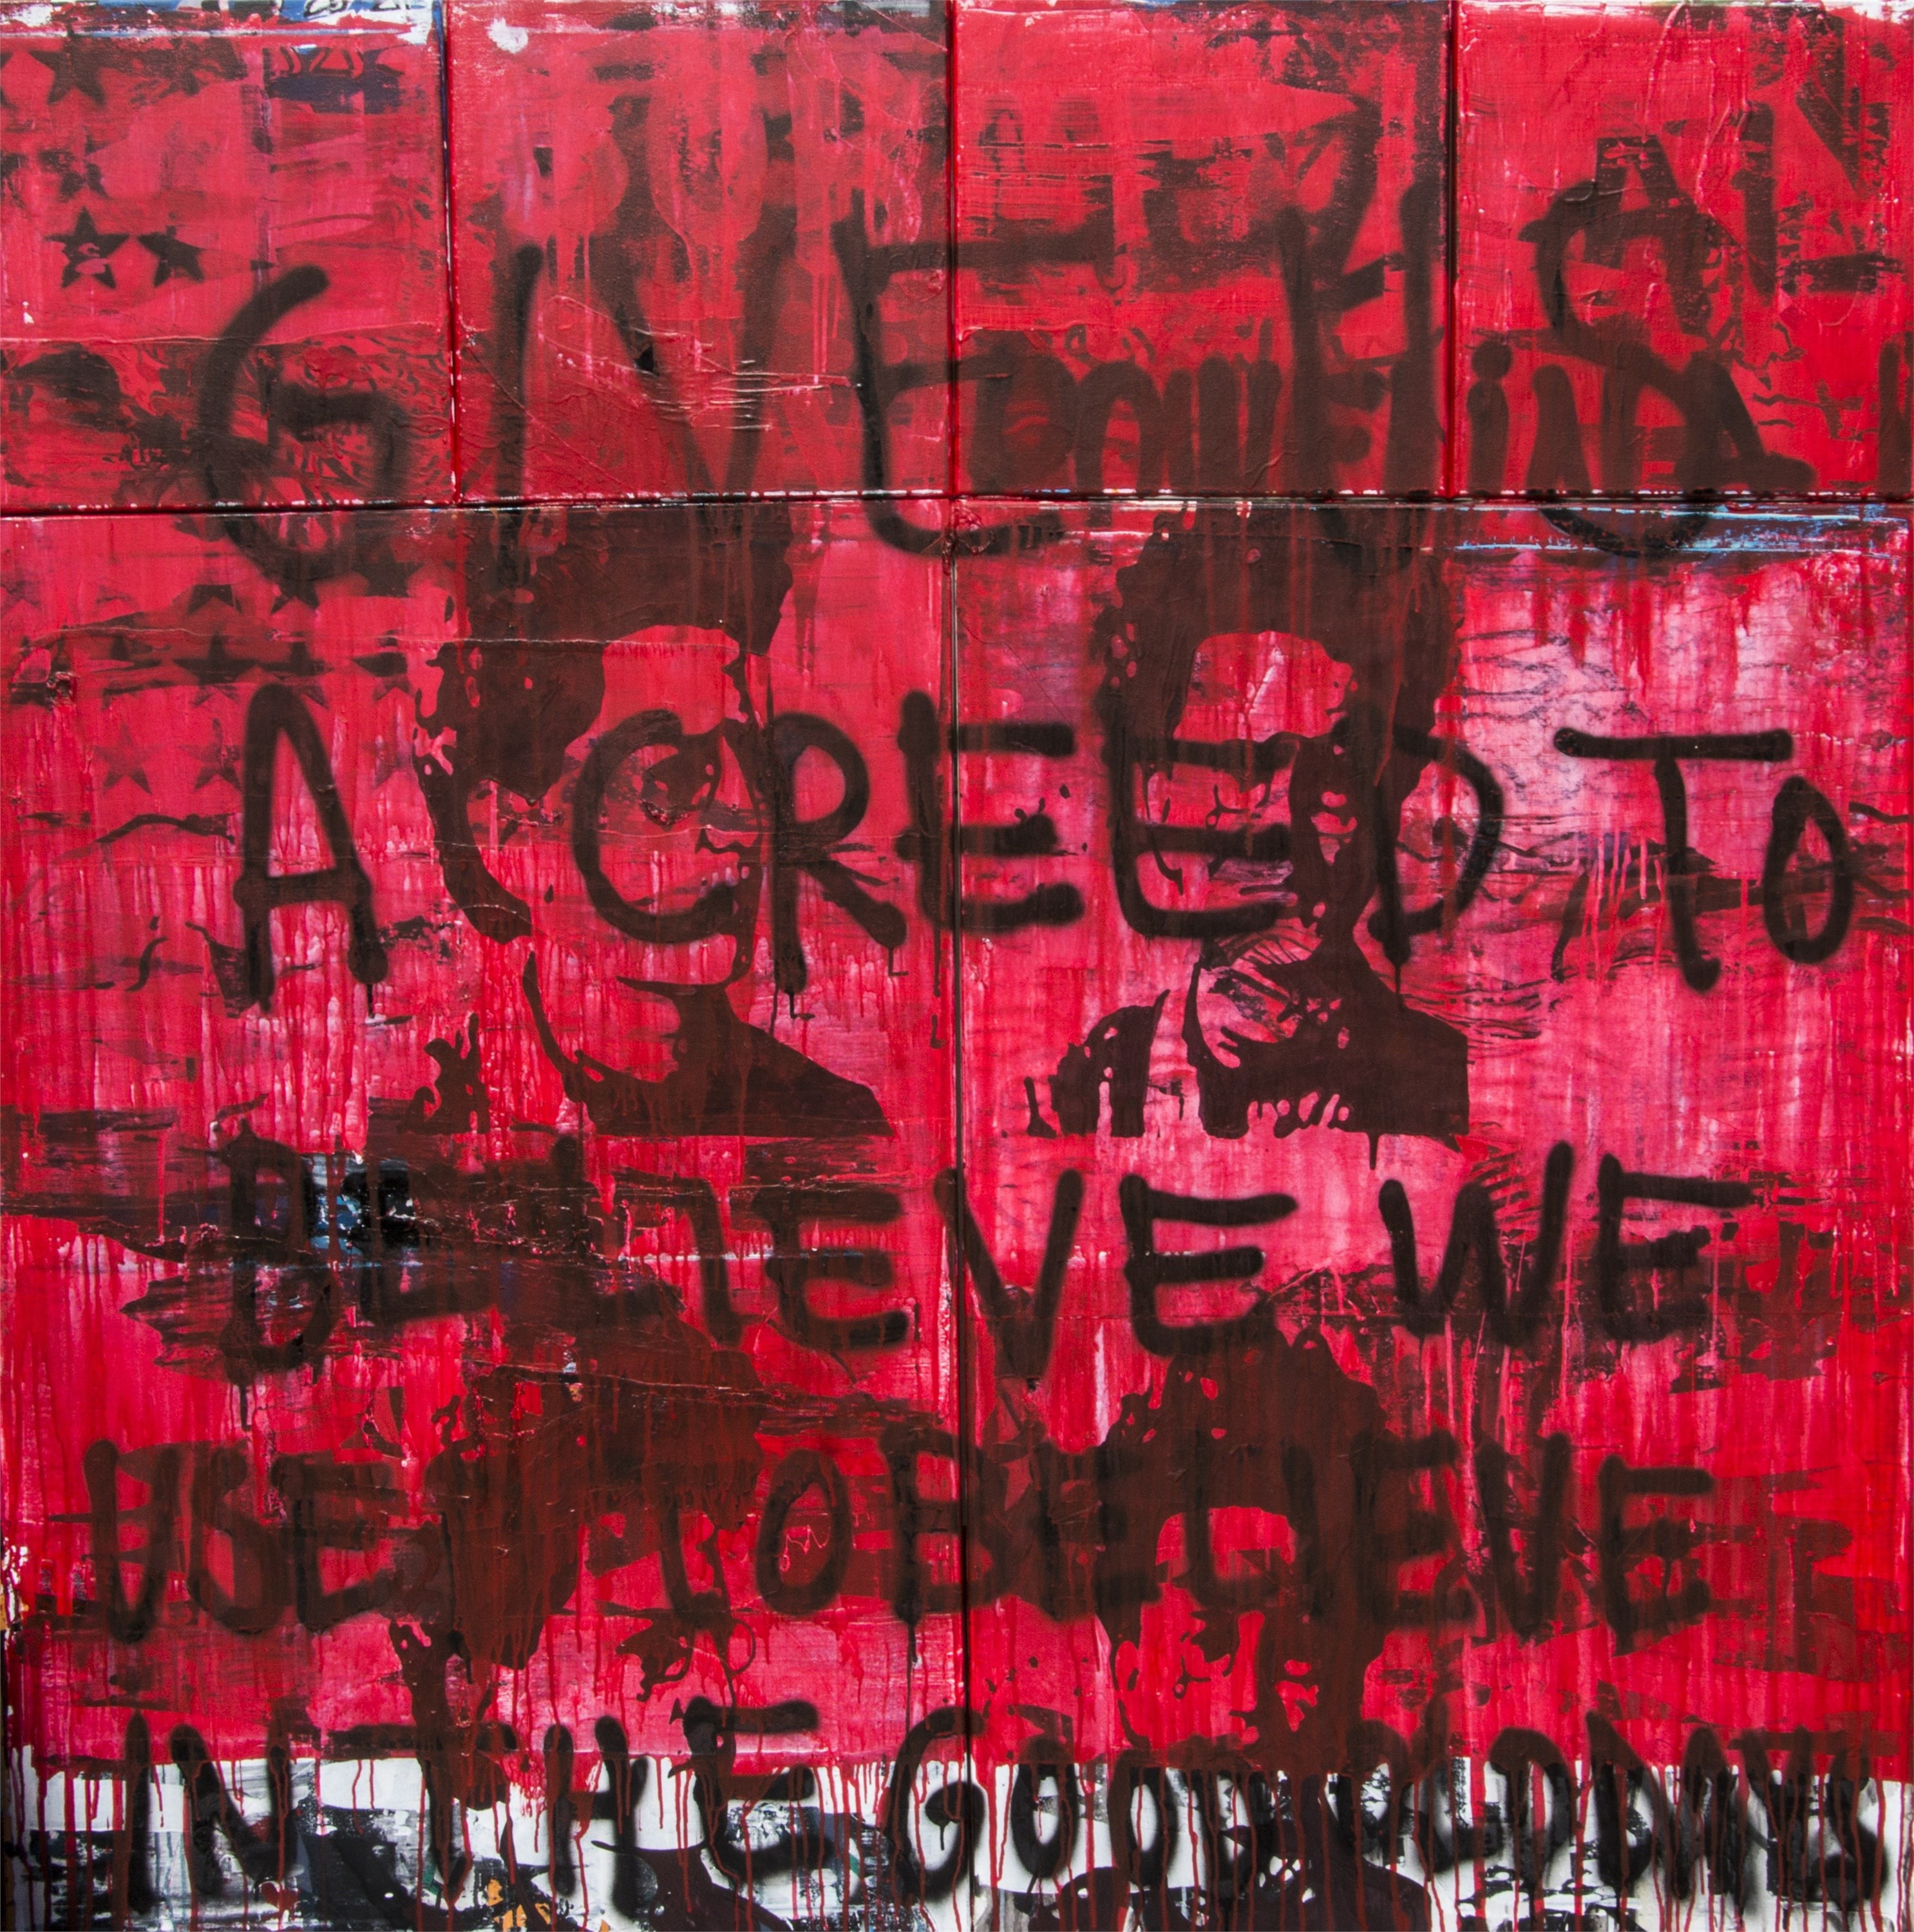 Give me a creed to believe, original Avant-Garde Acrylic Painting by Paulo Moreira